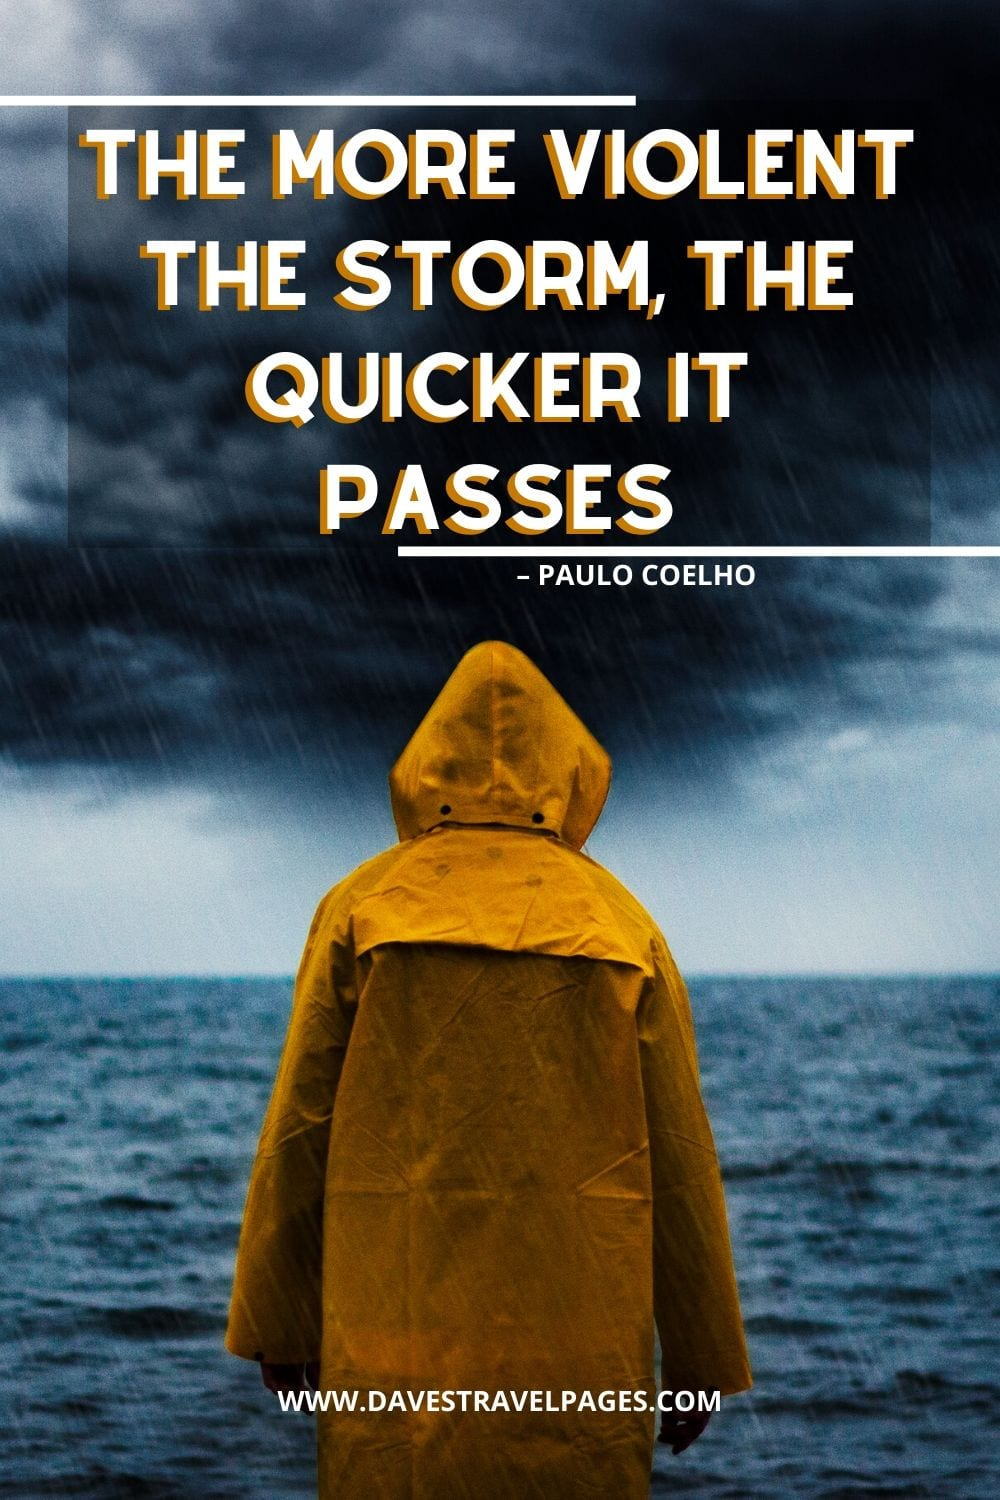 """The more violent the storm, the quicker it passes."" – Paulo Coelho quotation"